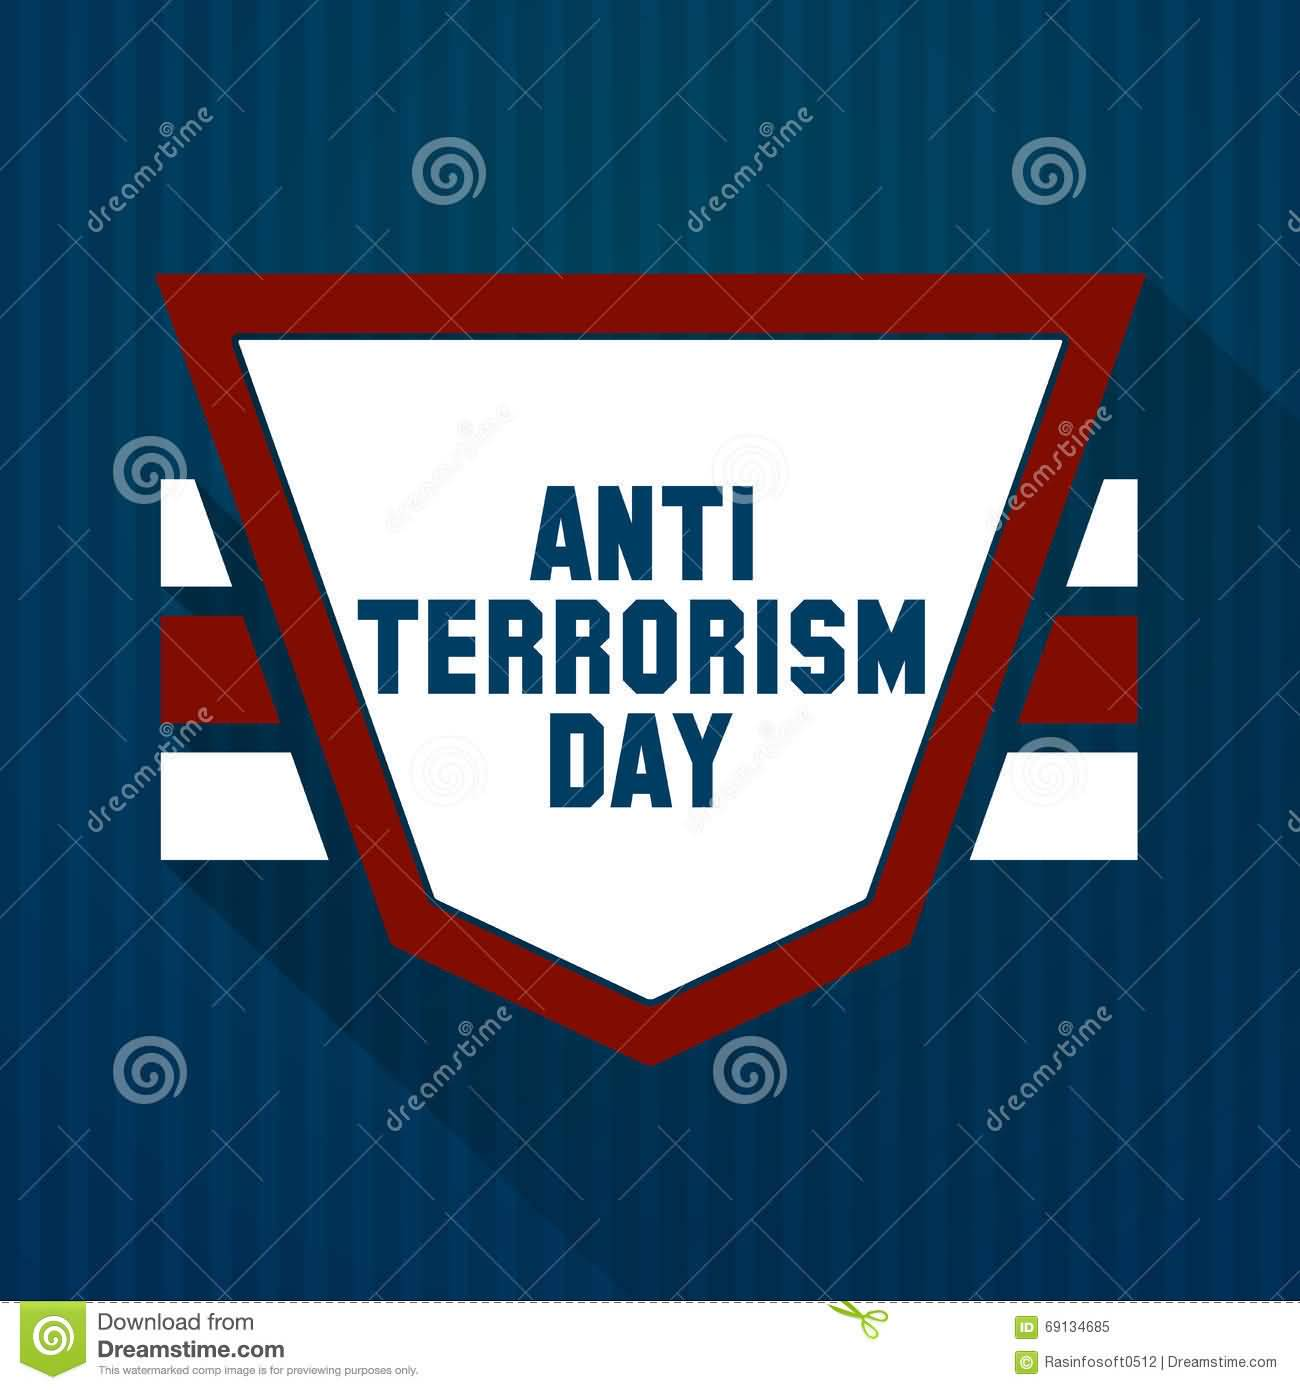 Anti Terrorism Day Illustration